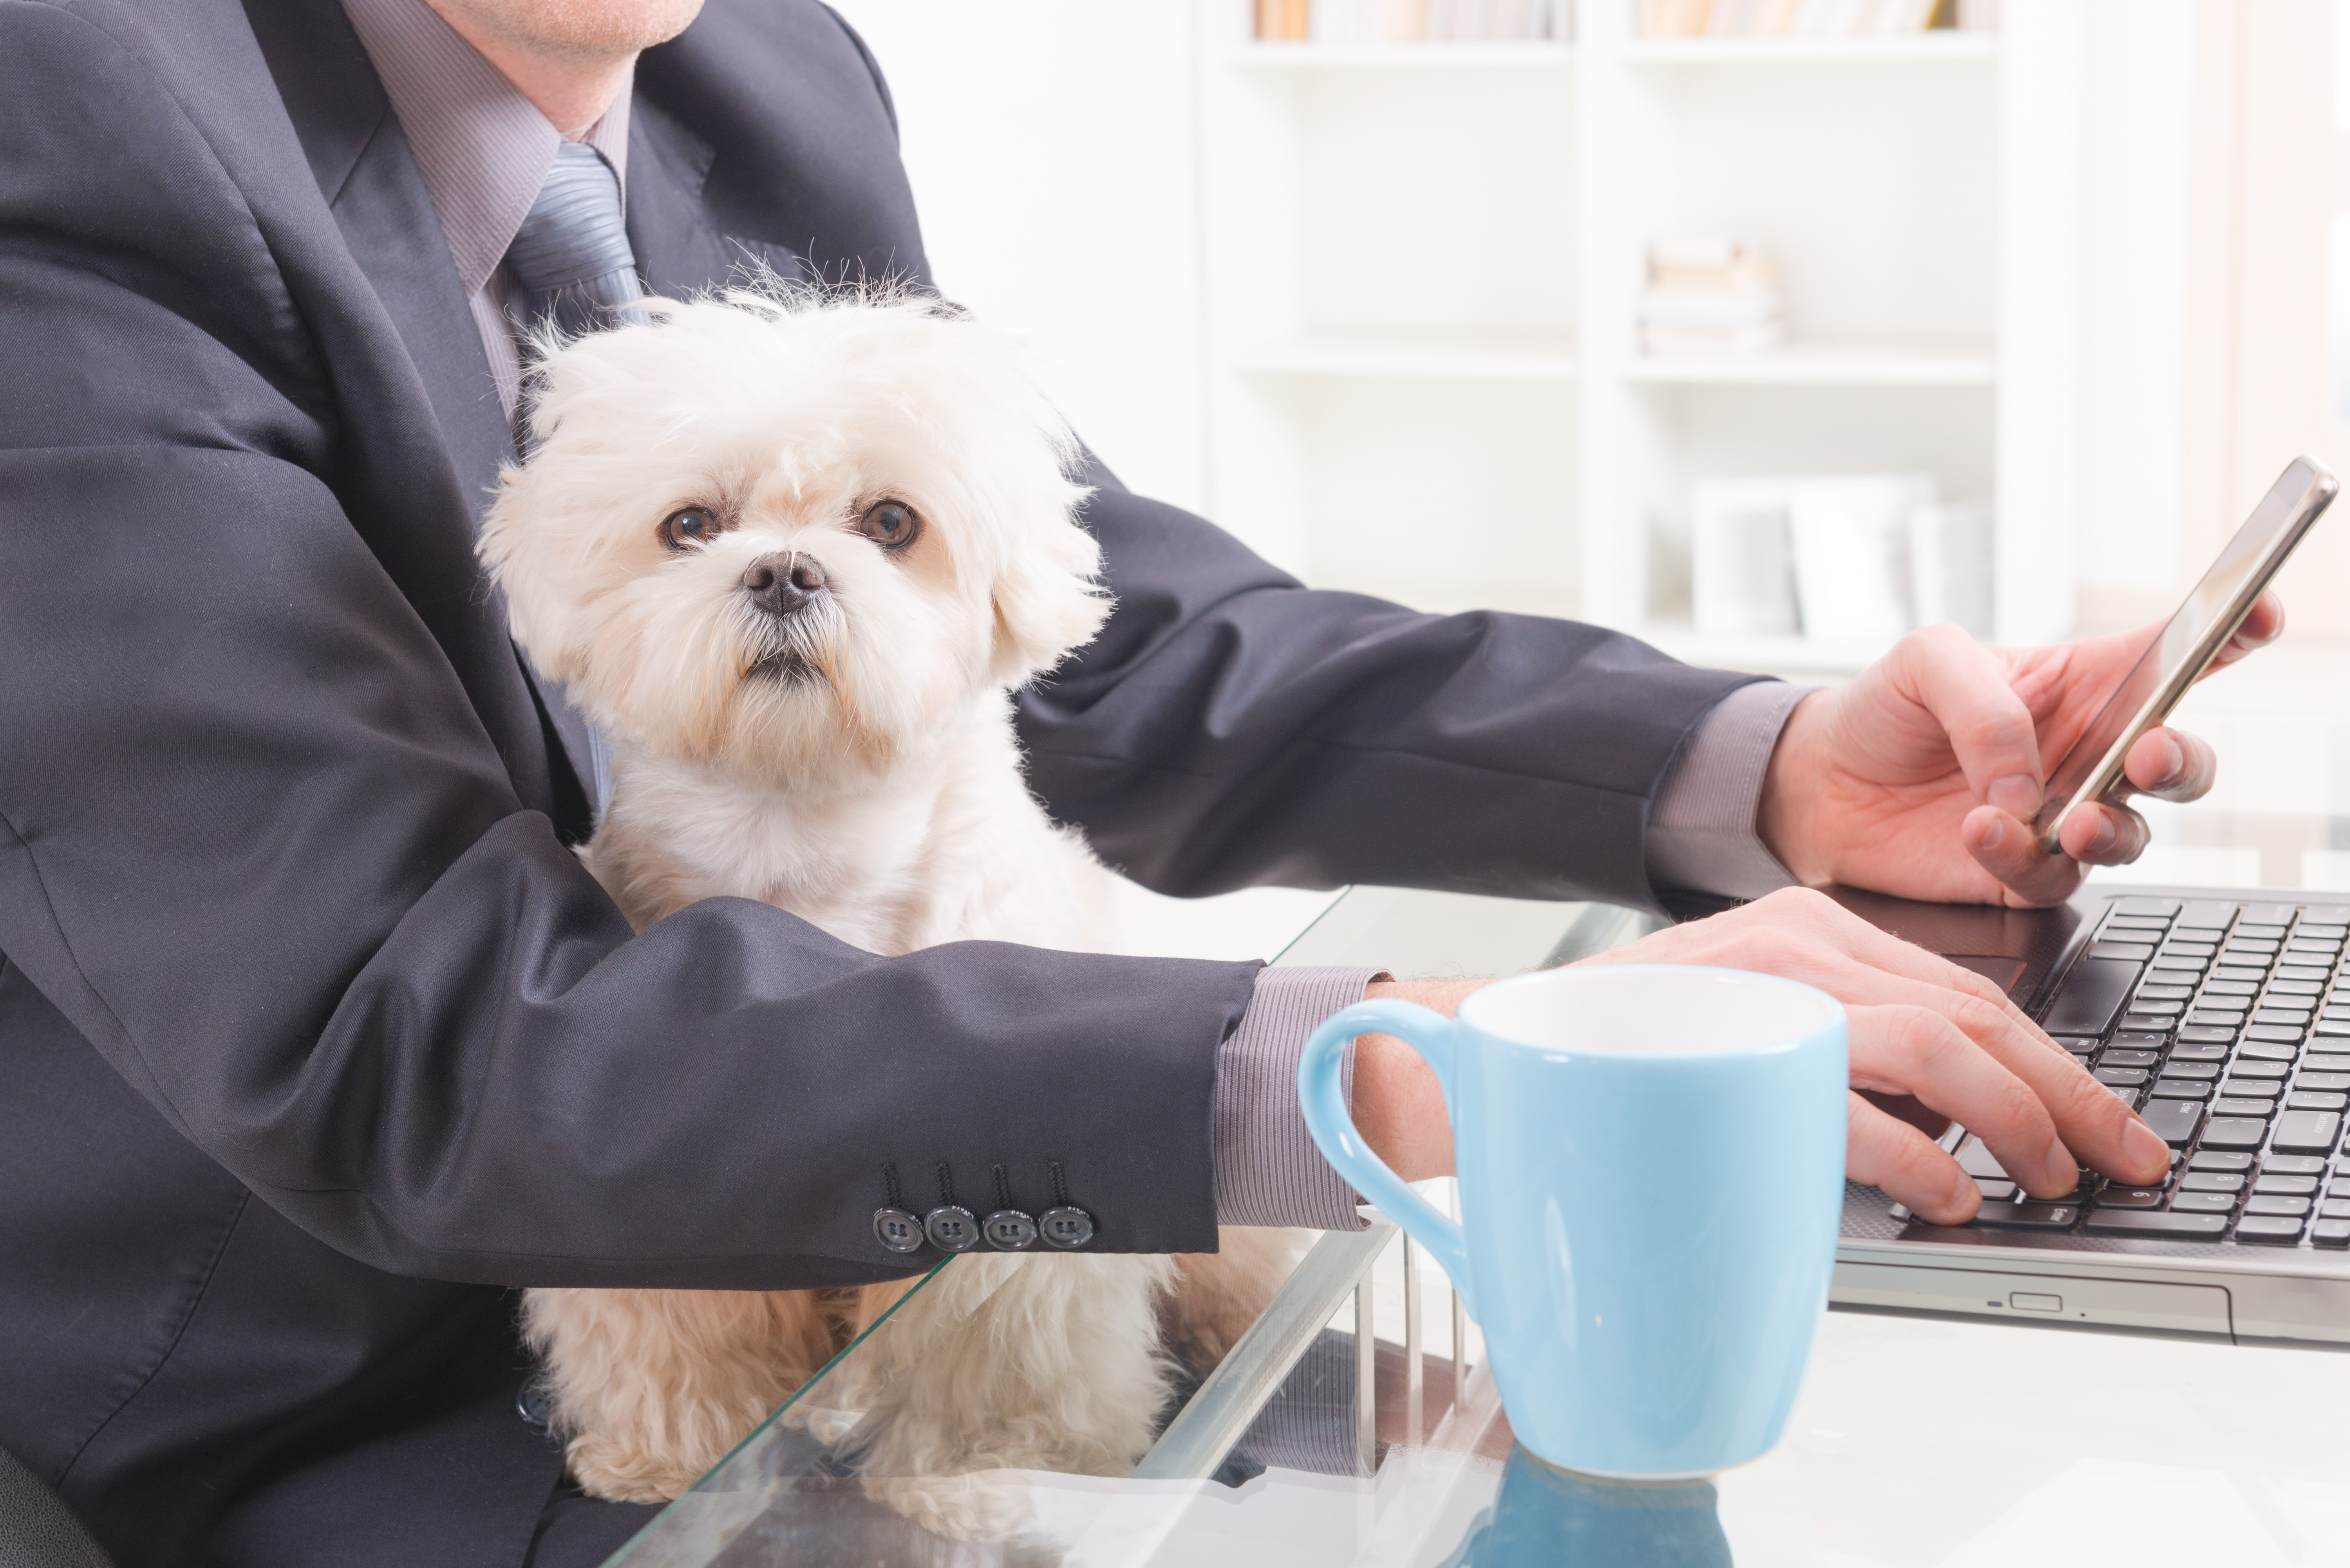 Bring Your Dog to Work Day Blog